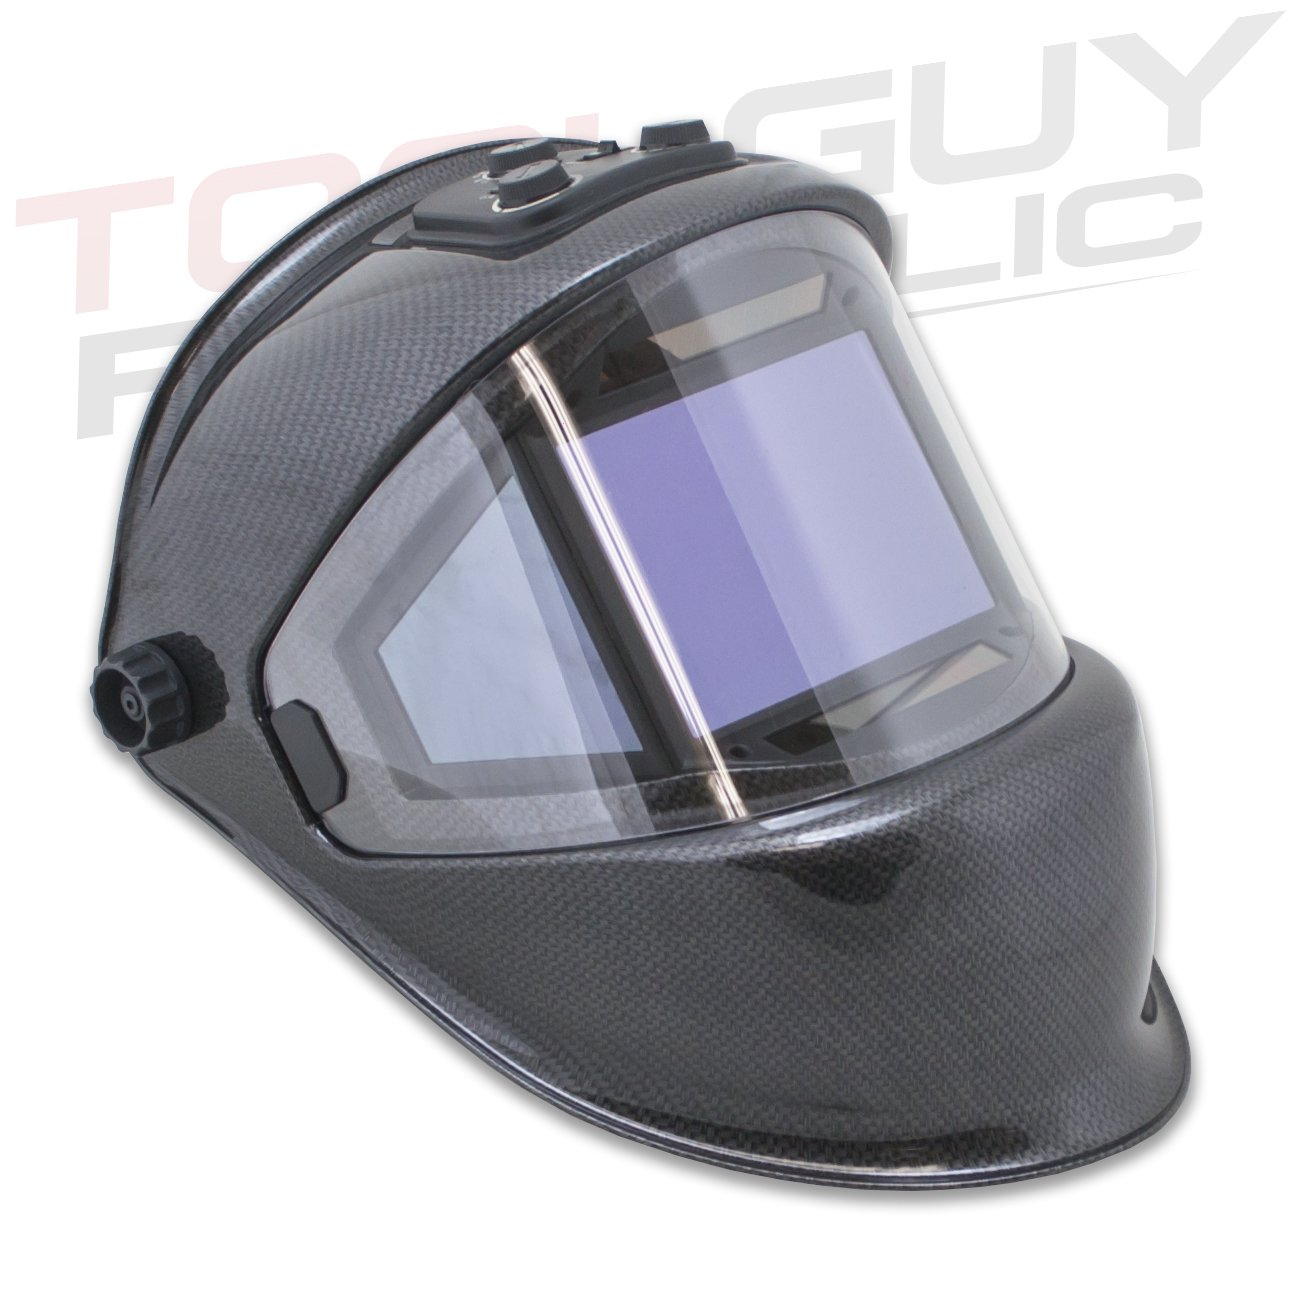 TGR Panoramic 180 View Solar Powered Auto Darkening Welding Helmet - True Color (Carbon Fiber) by Tool Guy Republic (Image #1)